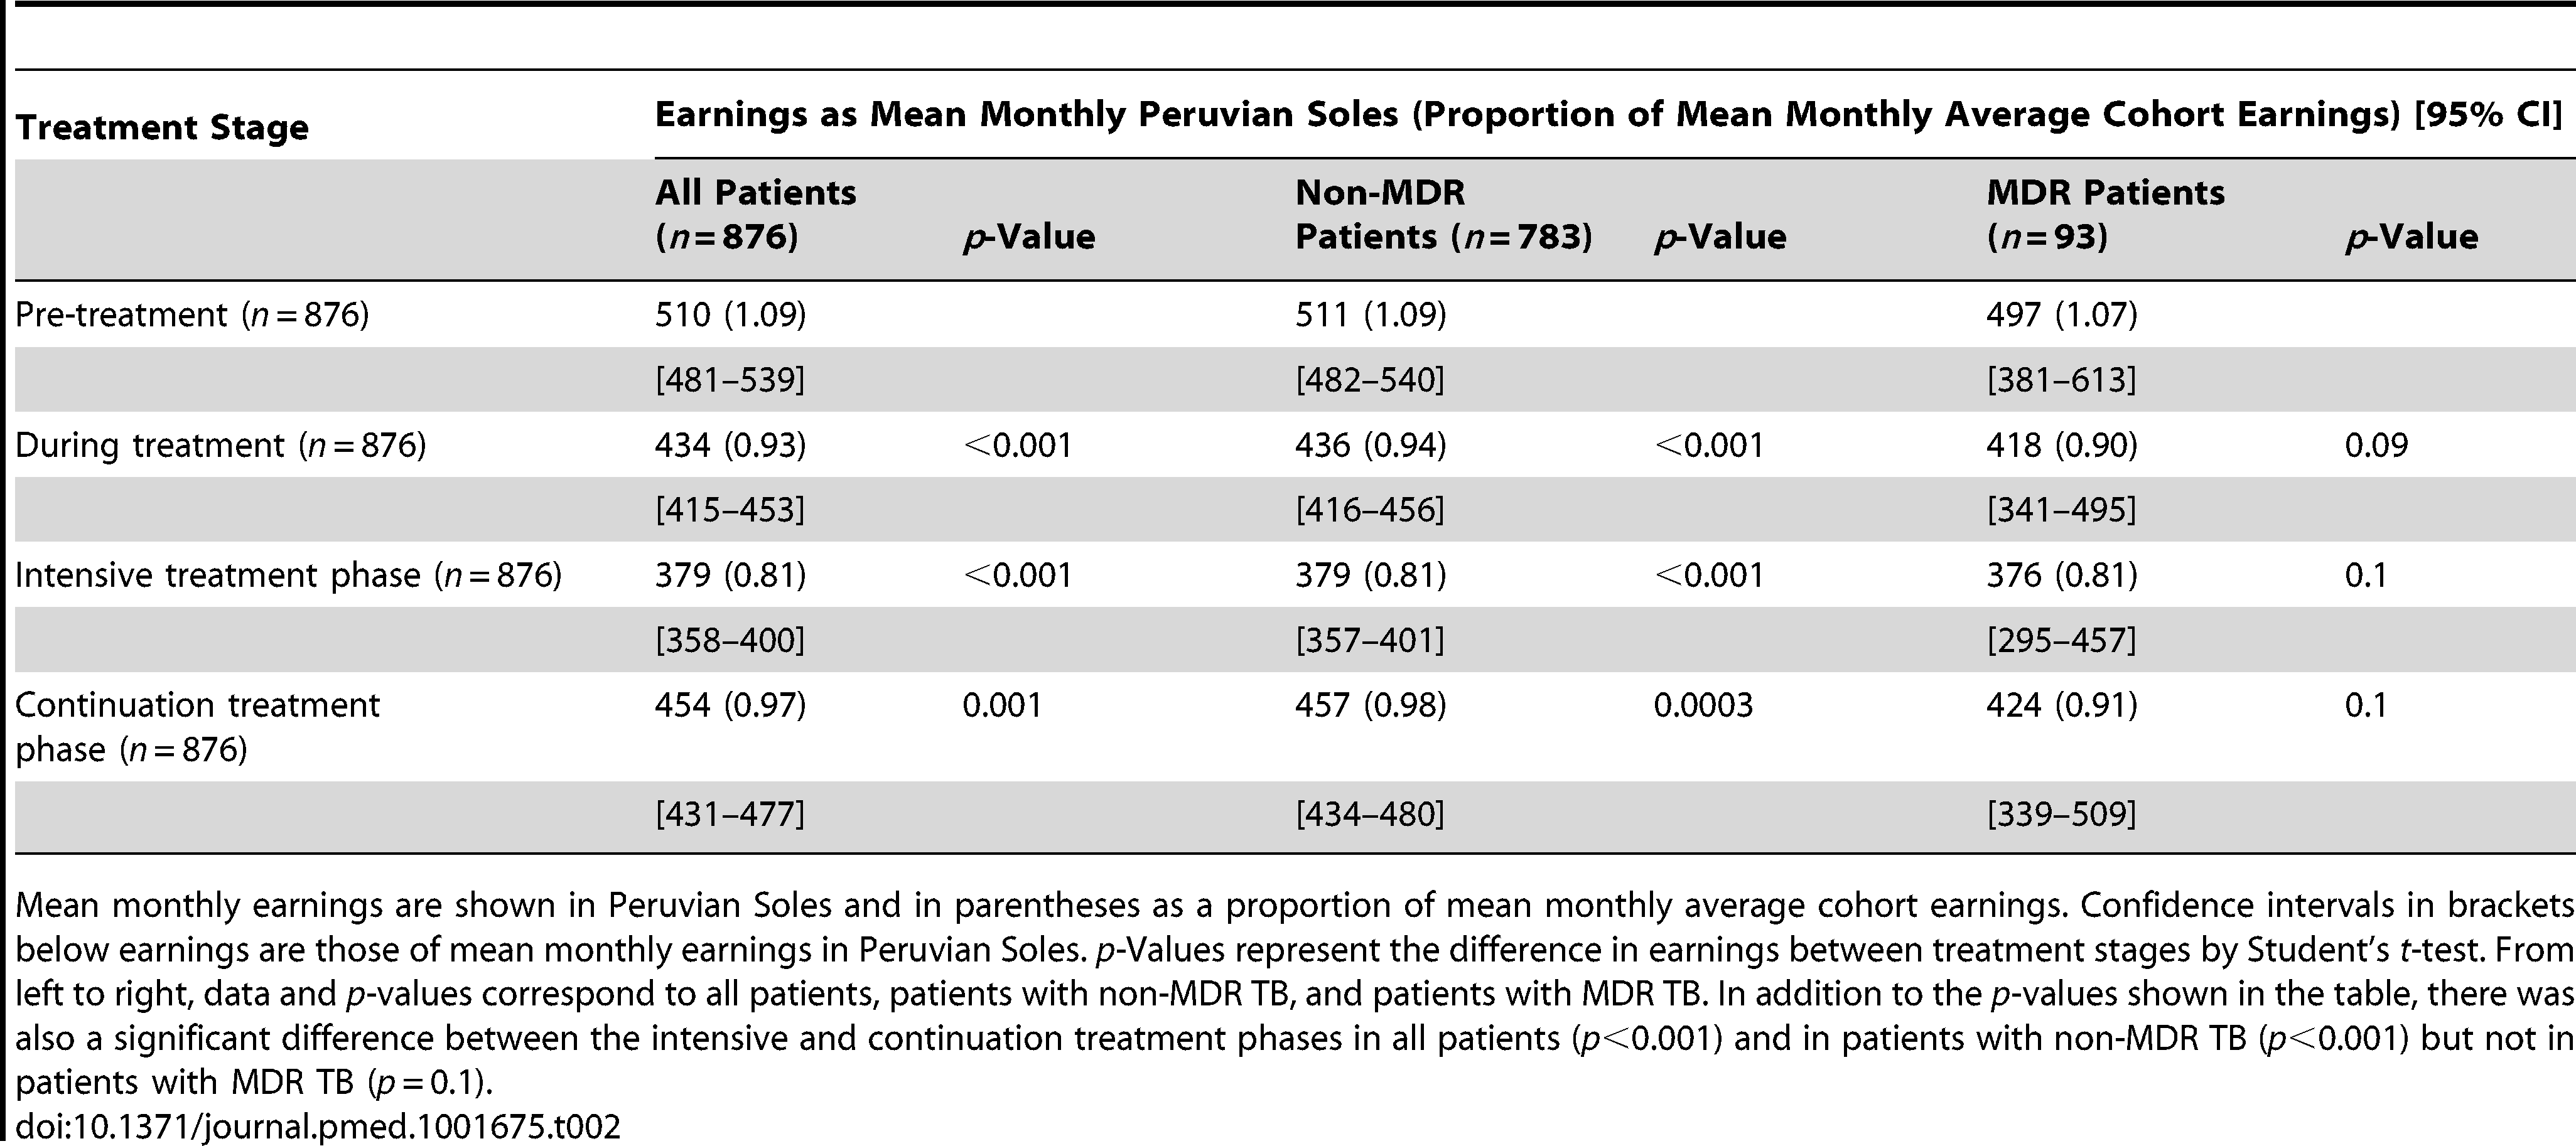 Comparison of mean monthly earnings of patient households by treatment stage.